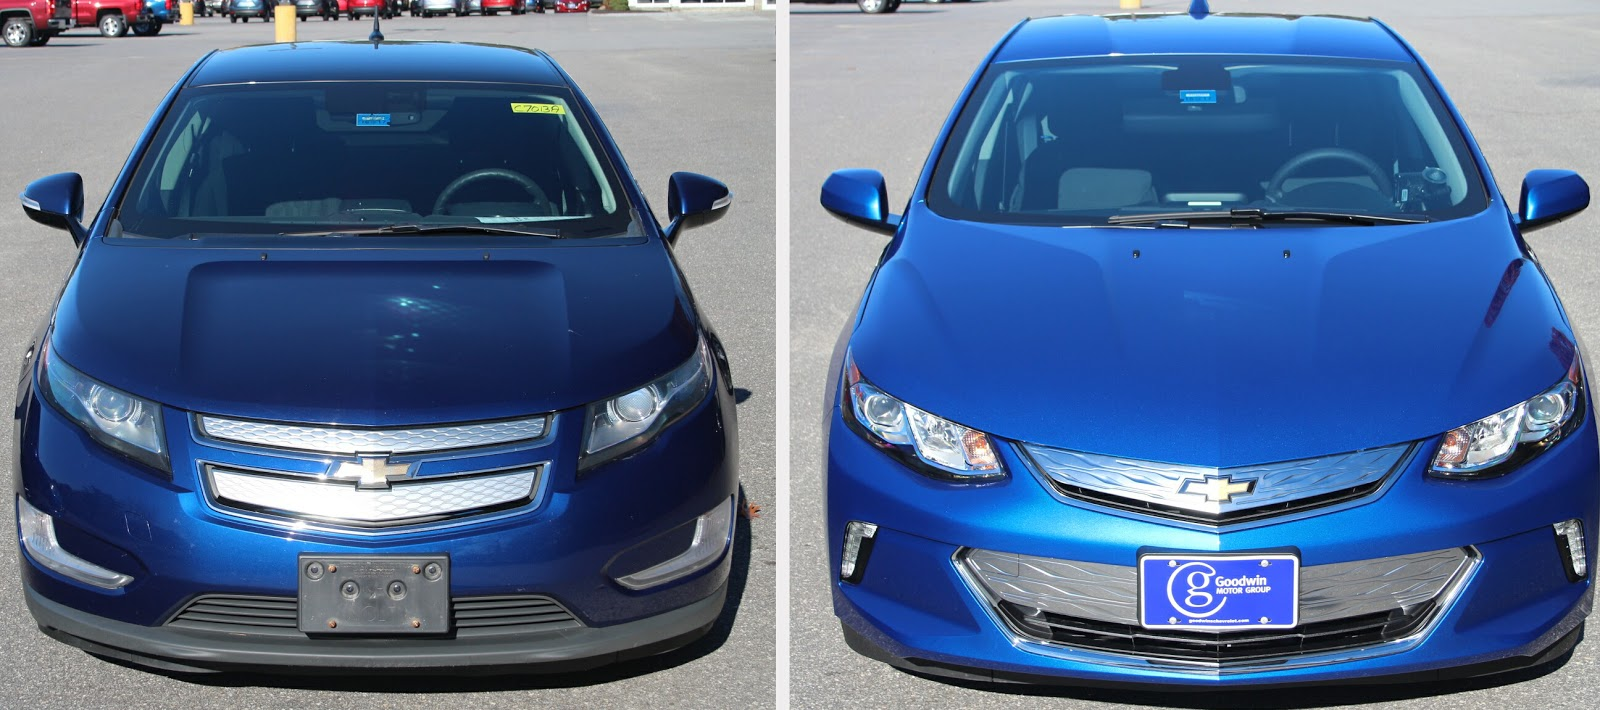 Living In The Shadow Of Climate Change Upgrading From 2012 To 2017 Chevy Volt Gas Overall I Am Thoroughly Impressed It Seems That Gm Were Paying Attention All Observations Pet Peeves And Complaints About Original Design